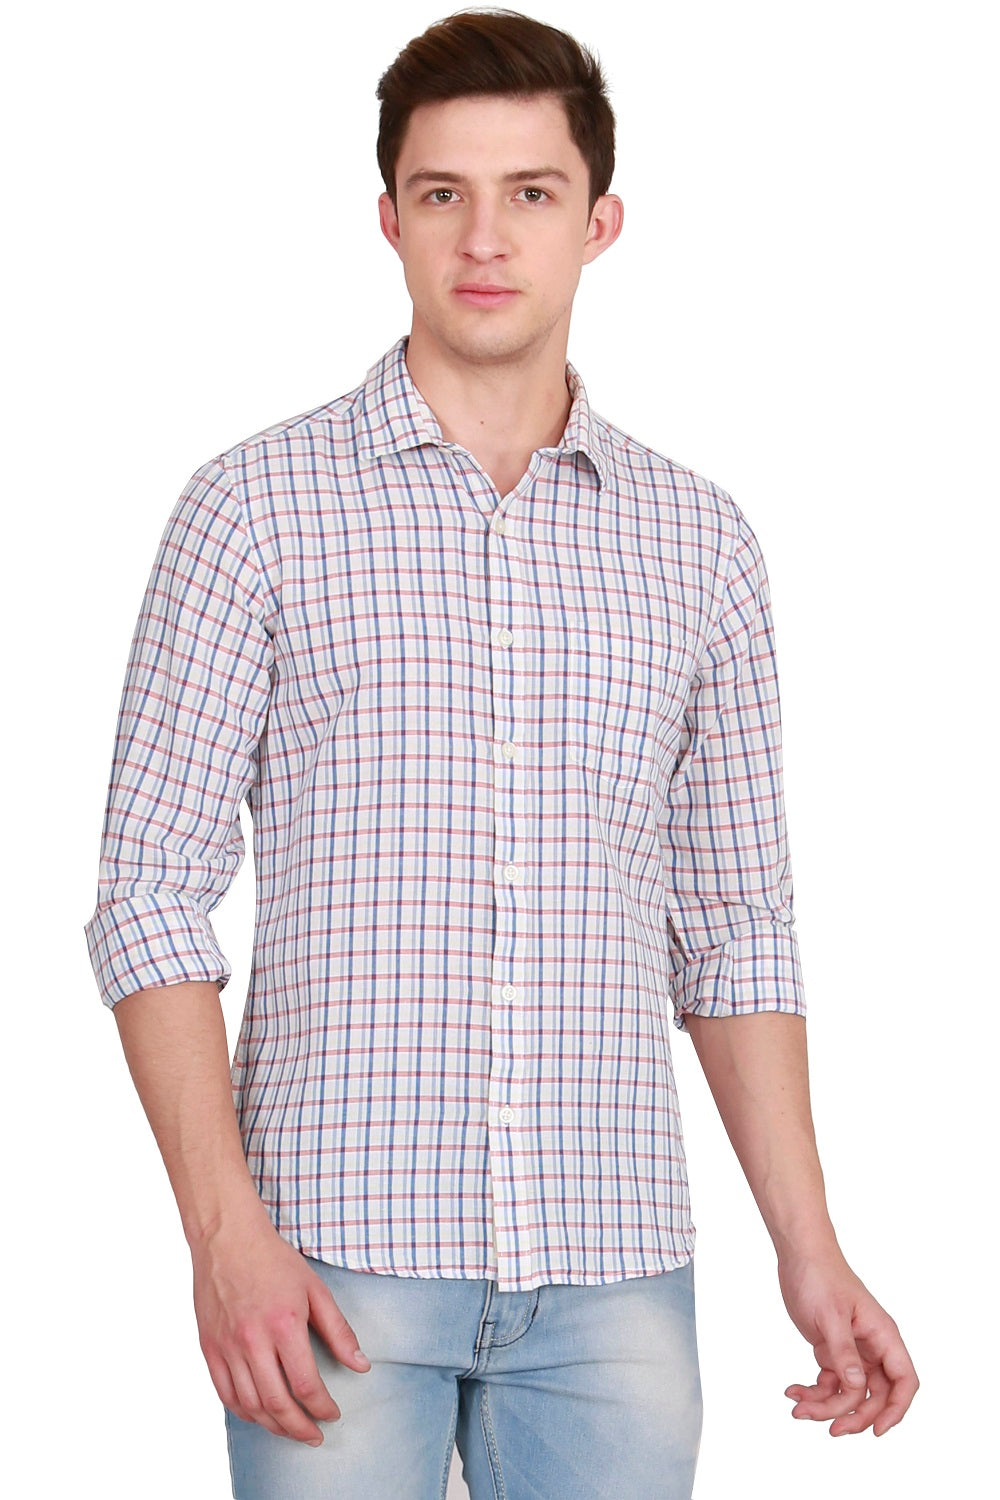 IMYOUNG Multicolored Checked Slim Fit Casual Shirt